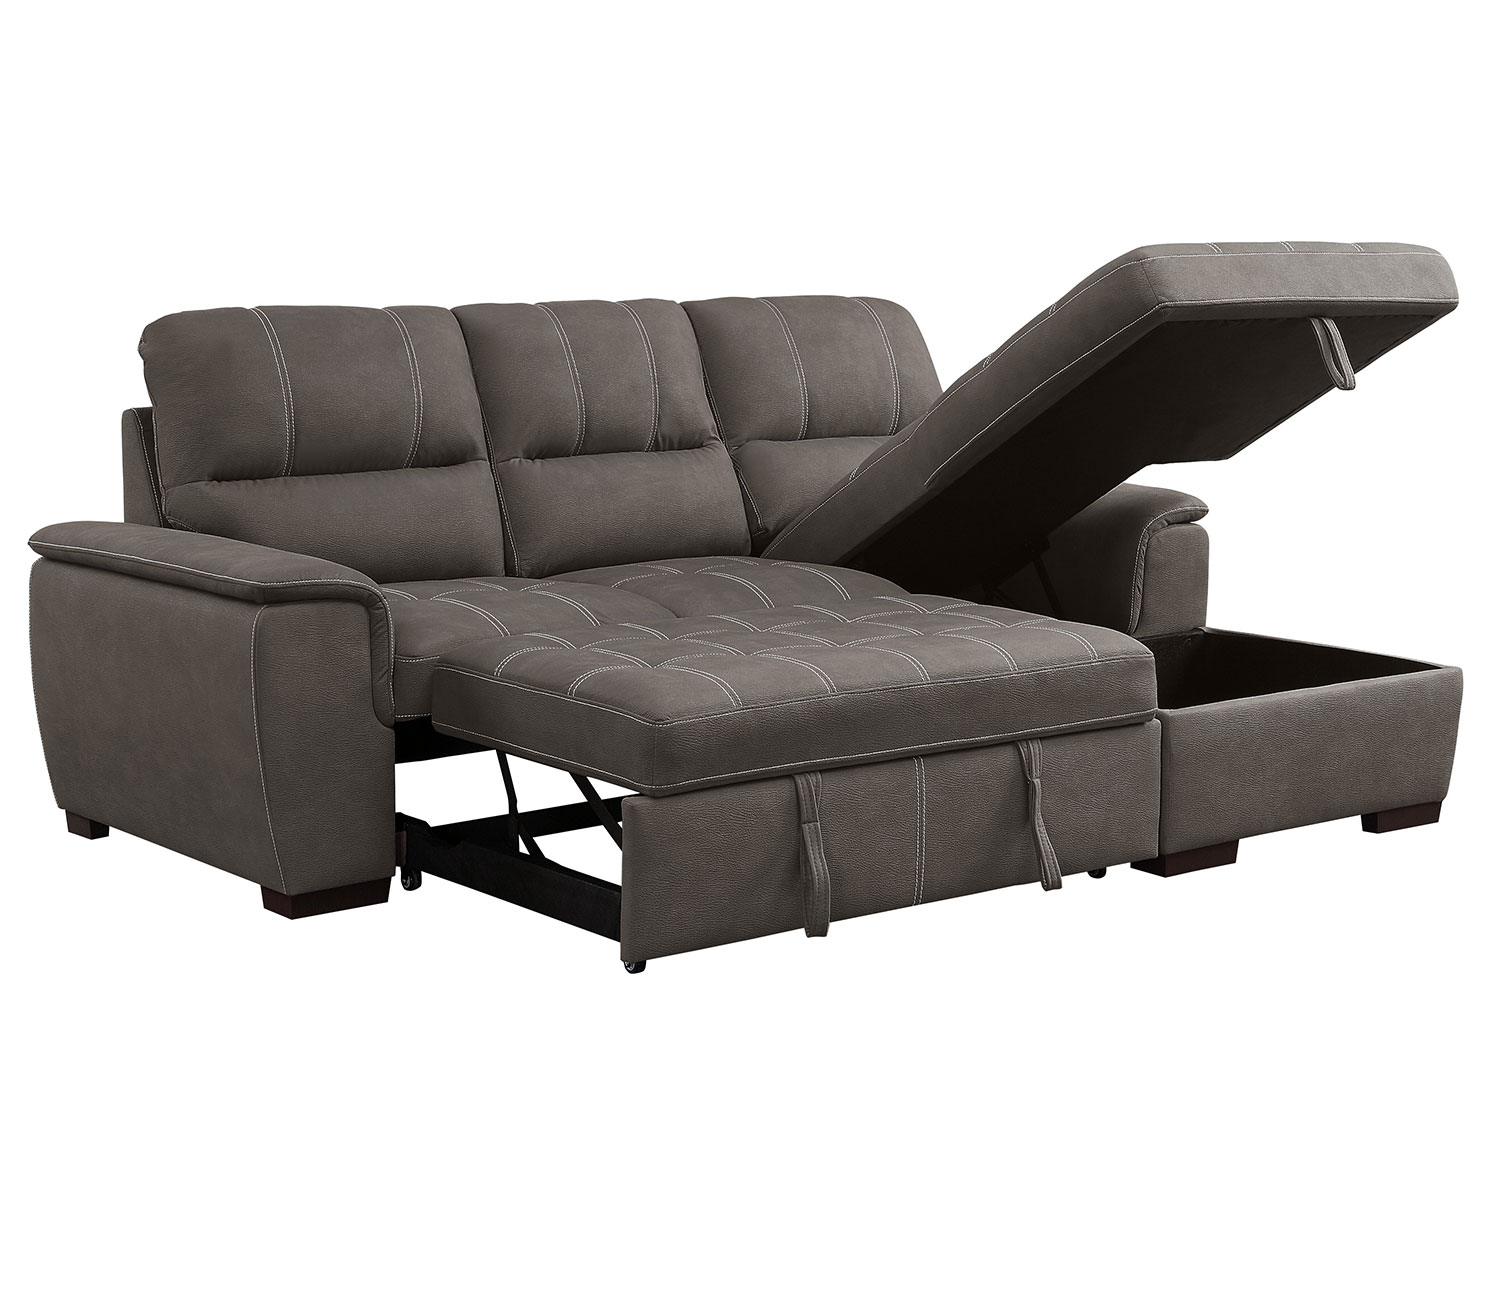 Homelegance Andes Sectional with Pull-out Bed and Hidden Storage - Taupe